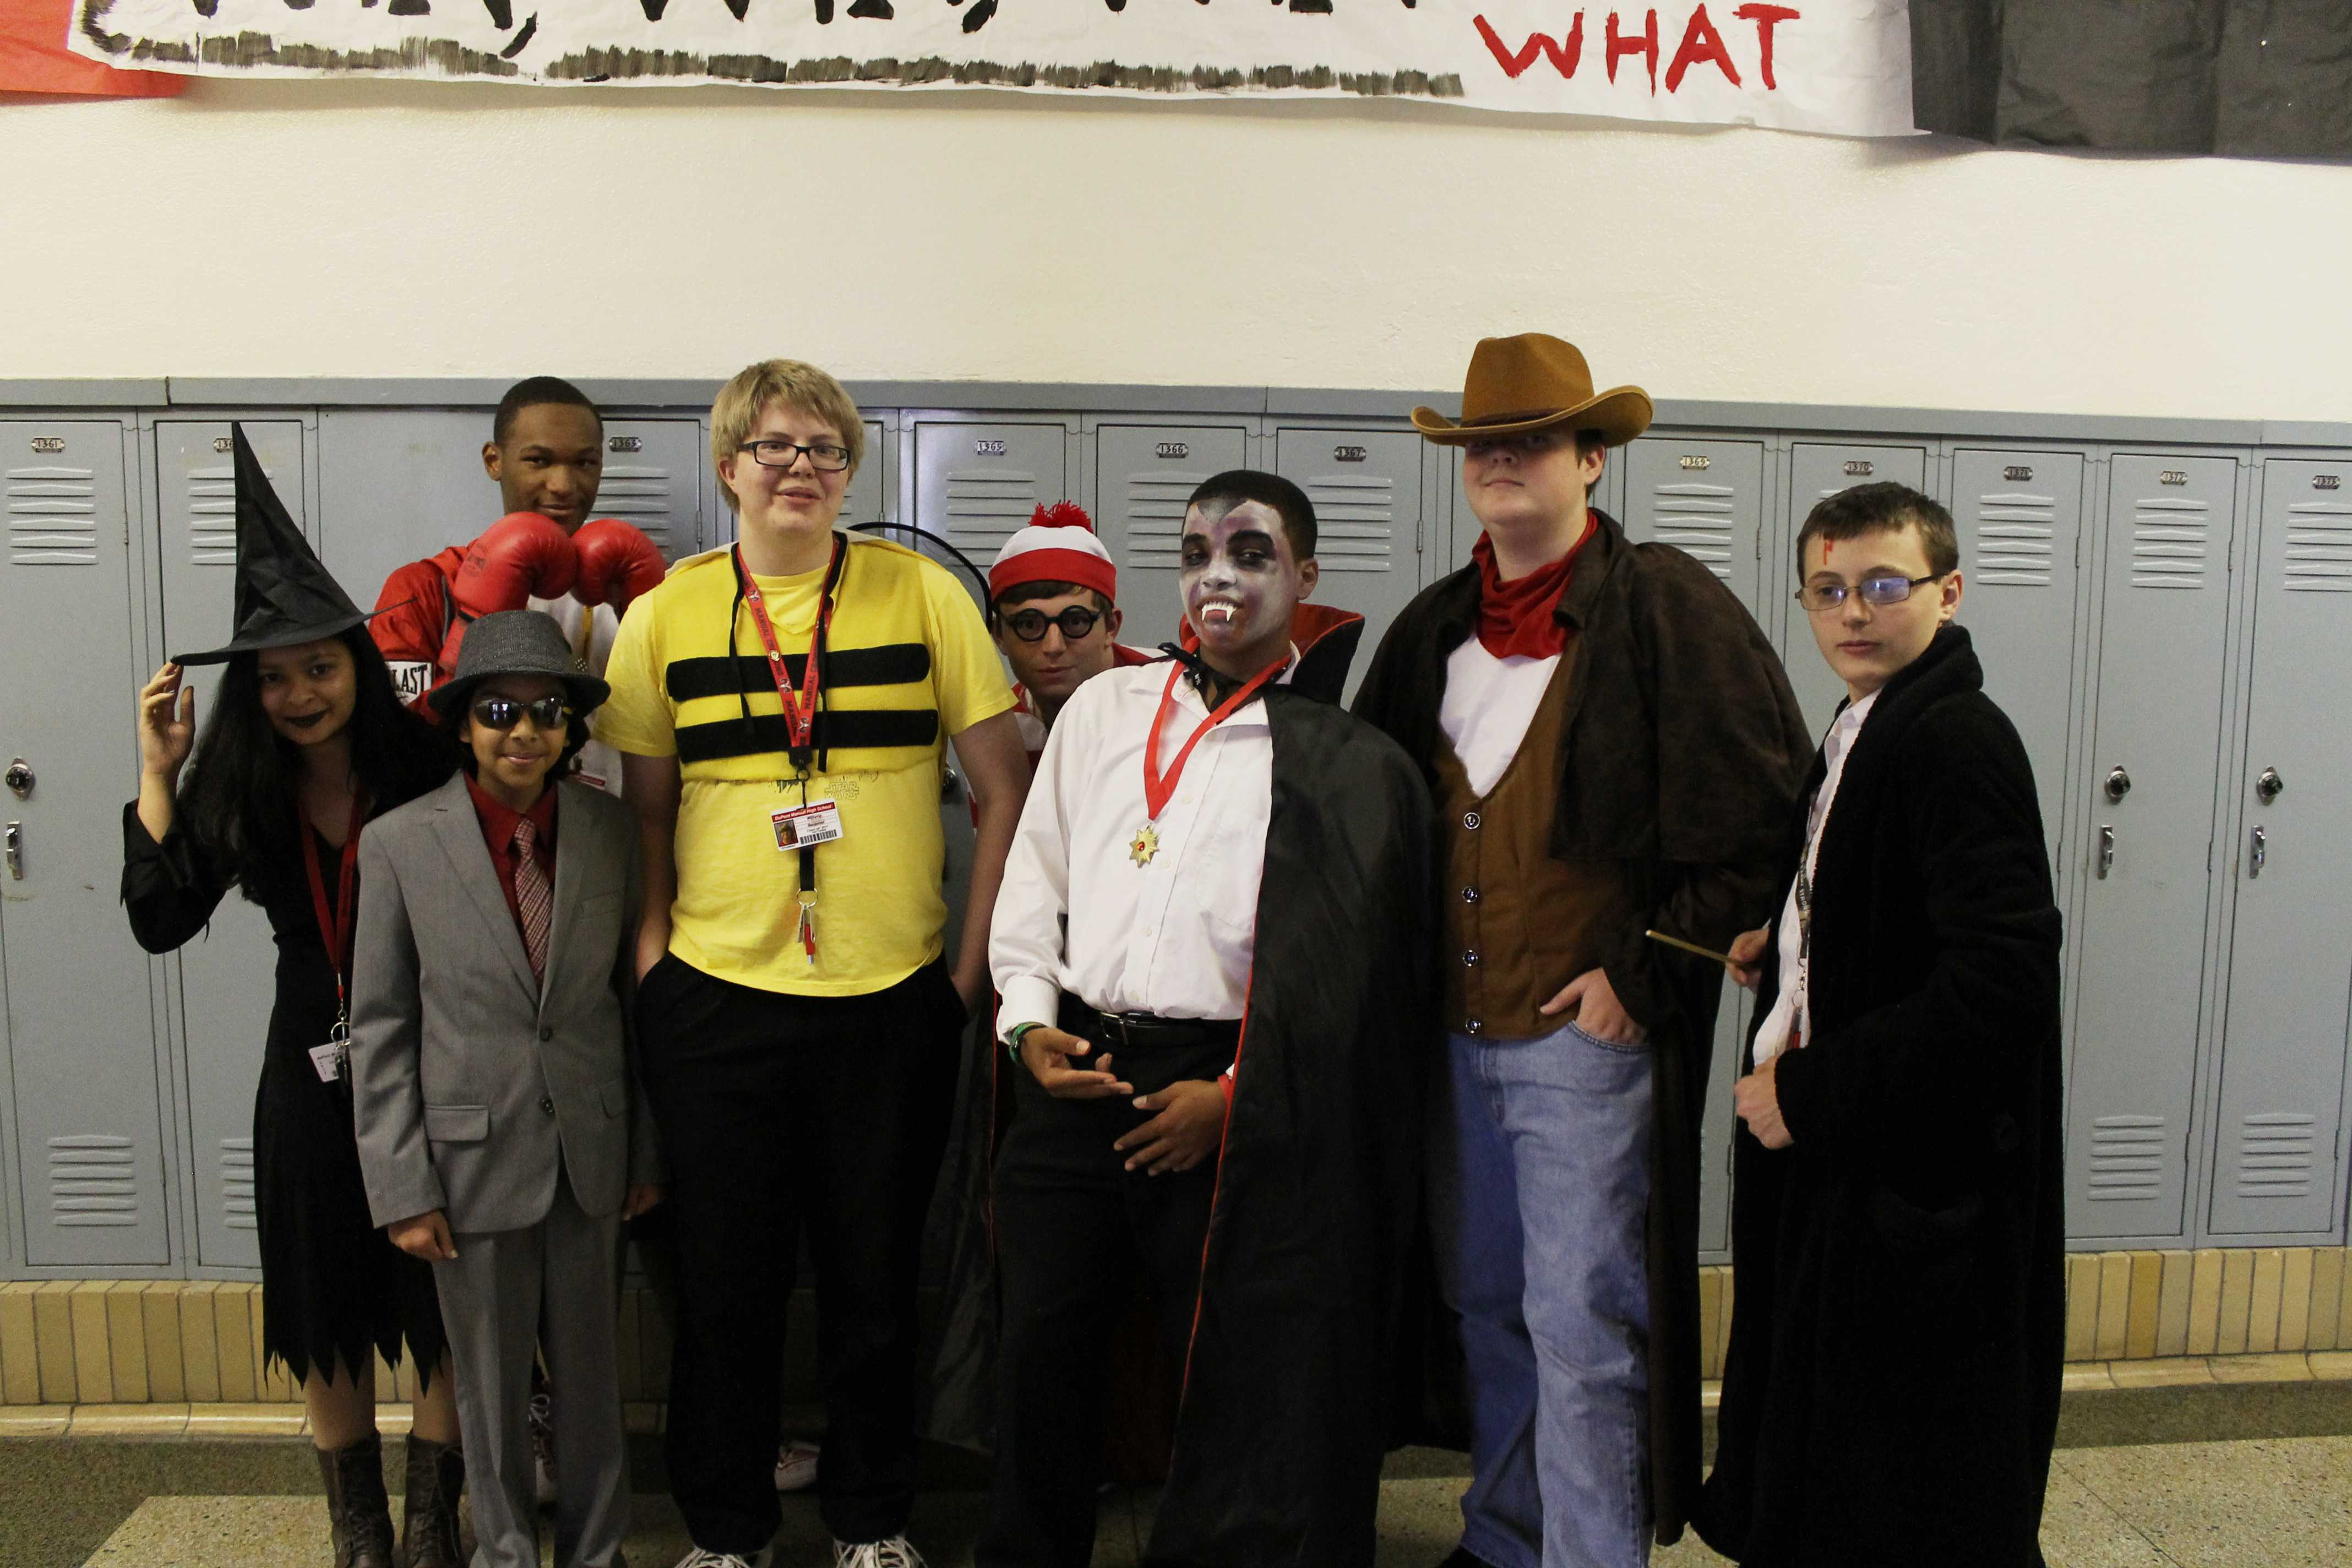 GALLERY: Red/White Week Day 3: Students dress up for Costume Day